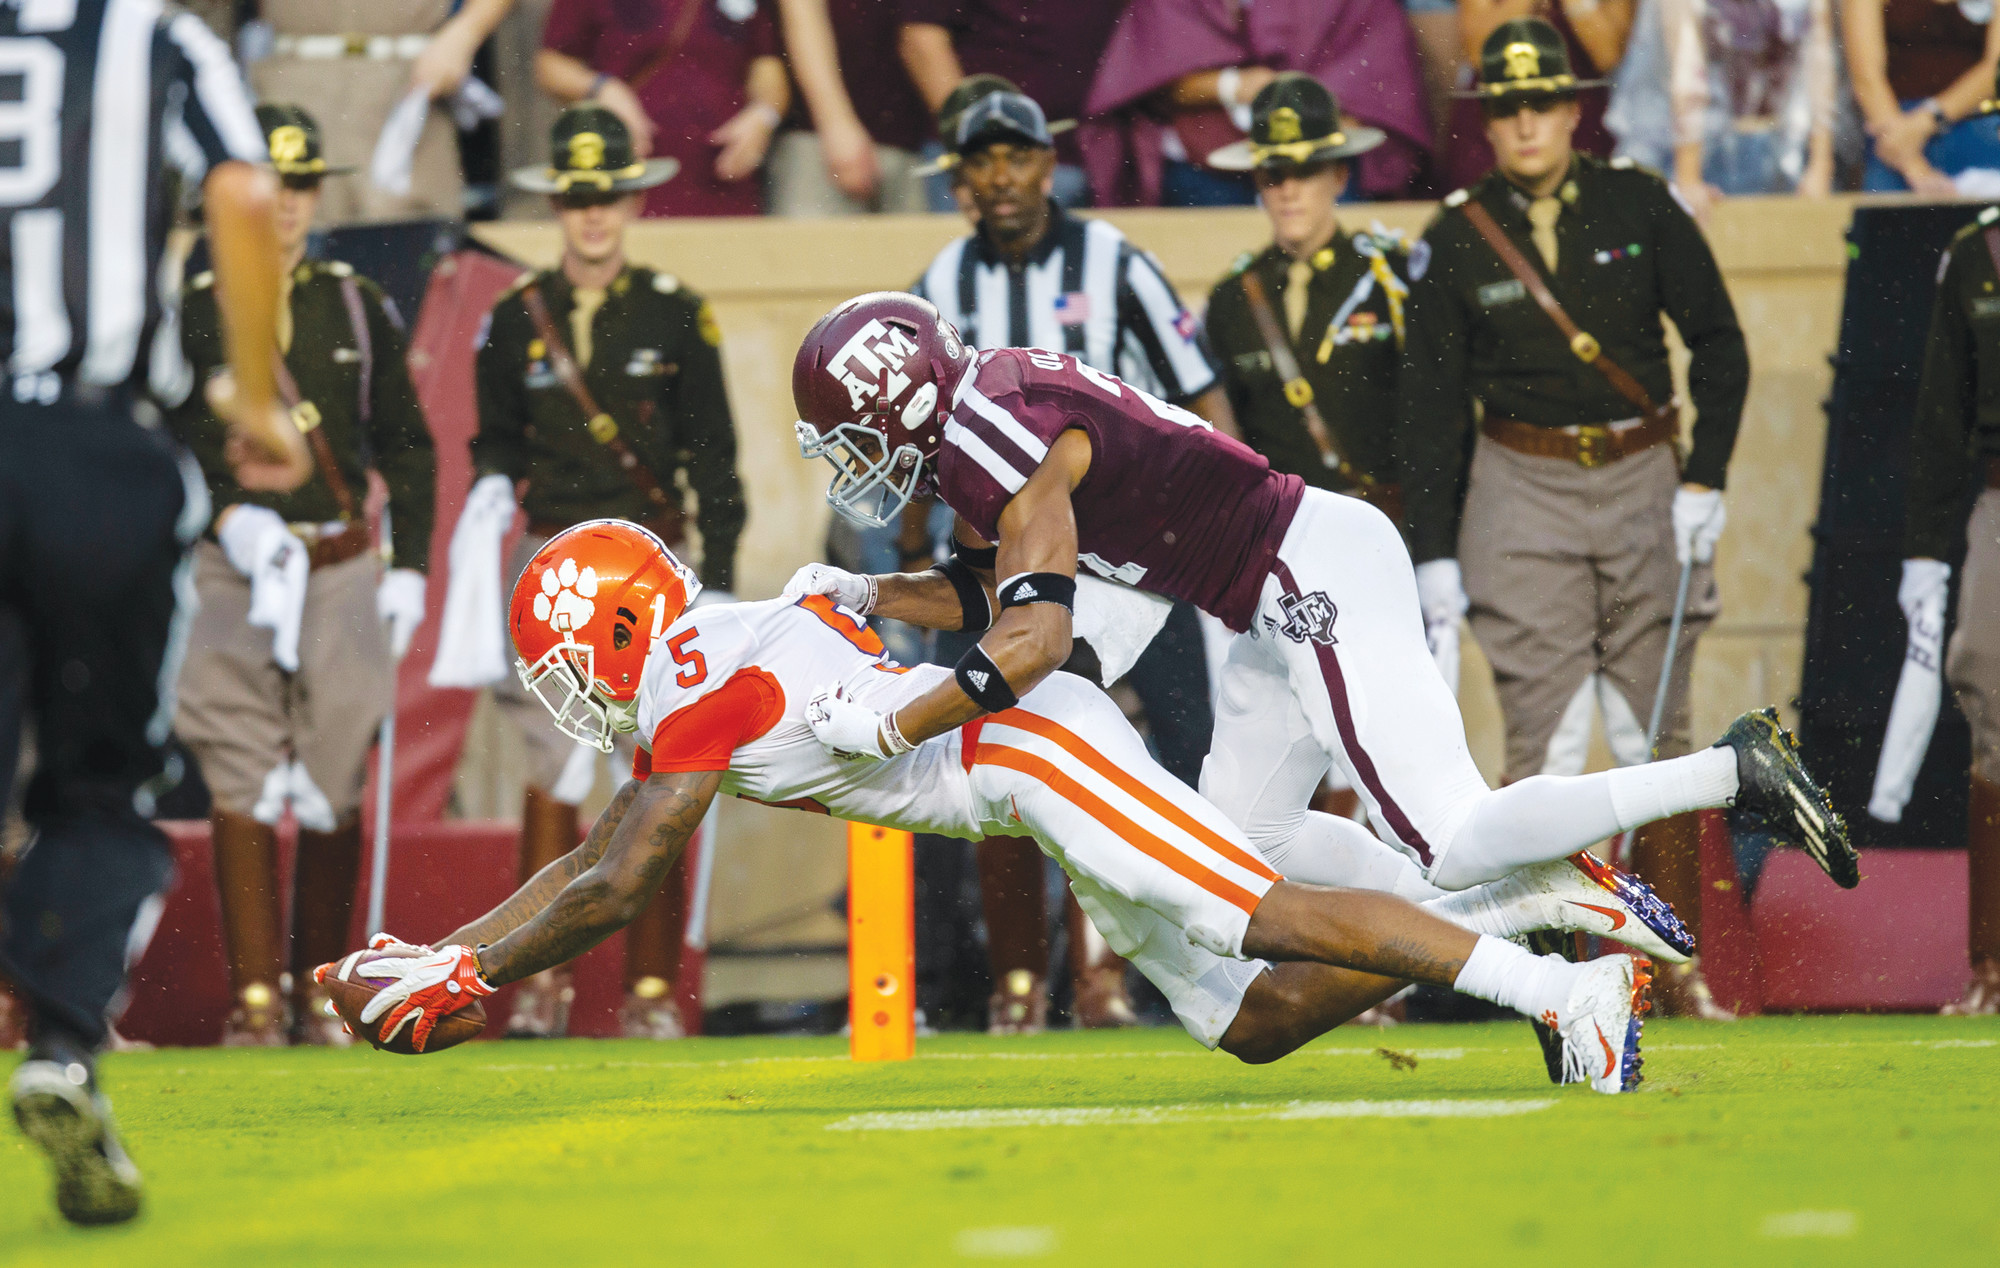 Clemson wide receiver Tee Higgins (5) dives for a touchdown as Texas A&M defensive back Charles Oliver (21) defends during the first half of the Tigers 28-26 victory over the Aggies on Saturday in College Station, Texas.